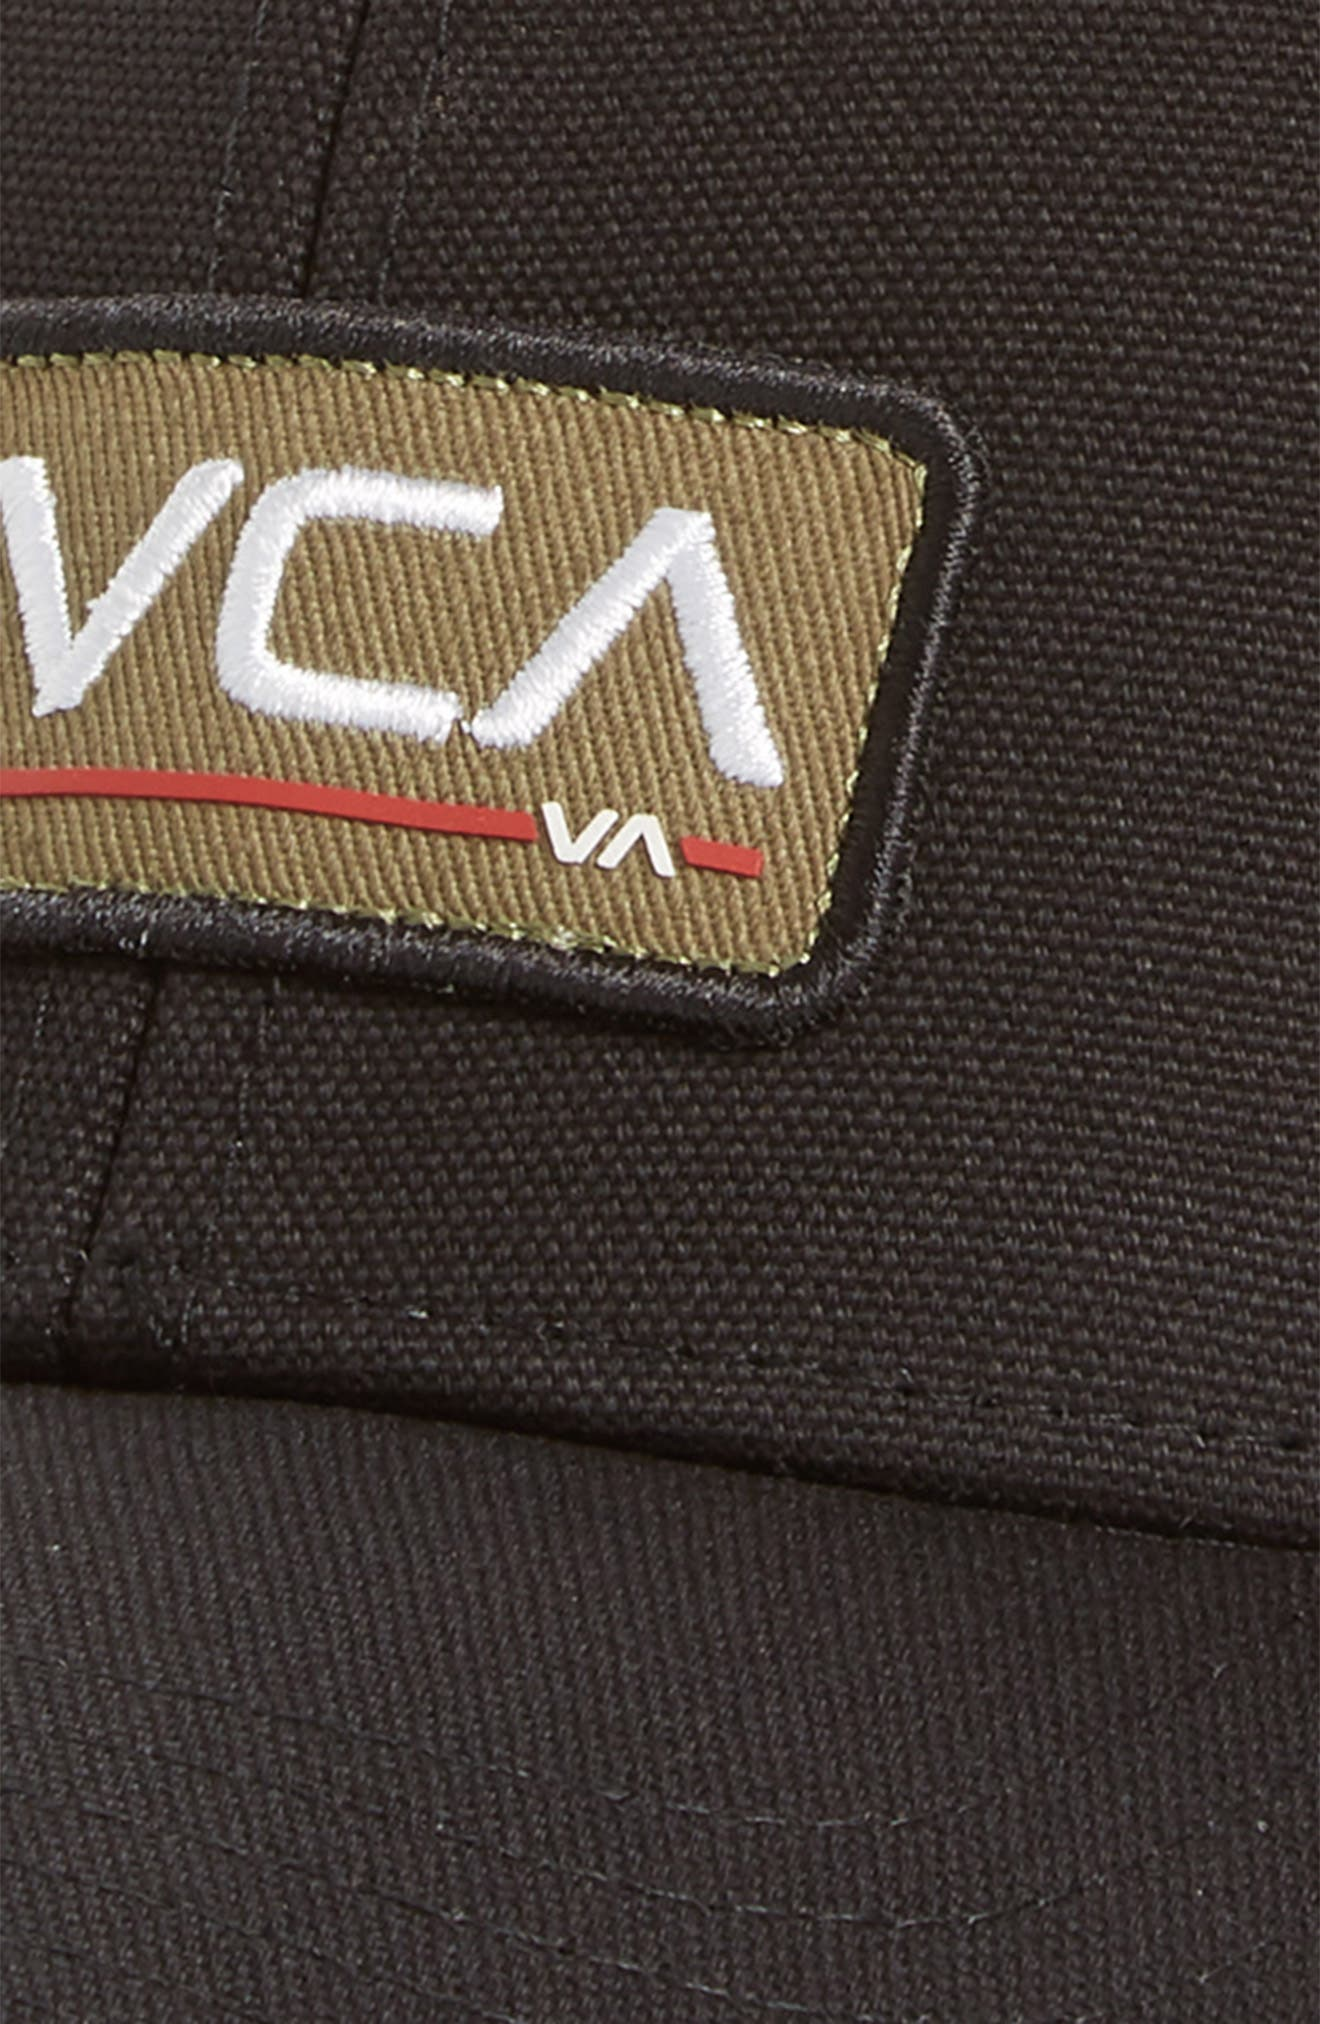 RVCA, Ticket II Trucker Hat, Alternate thumbnail 3, color, BLACK OLIVE